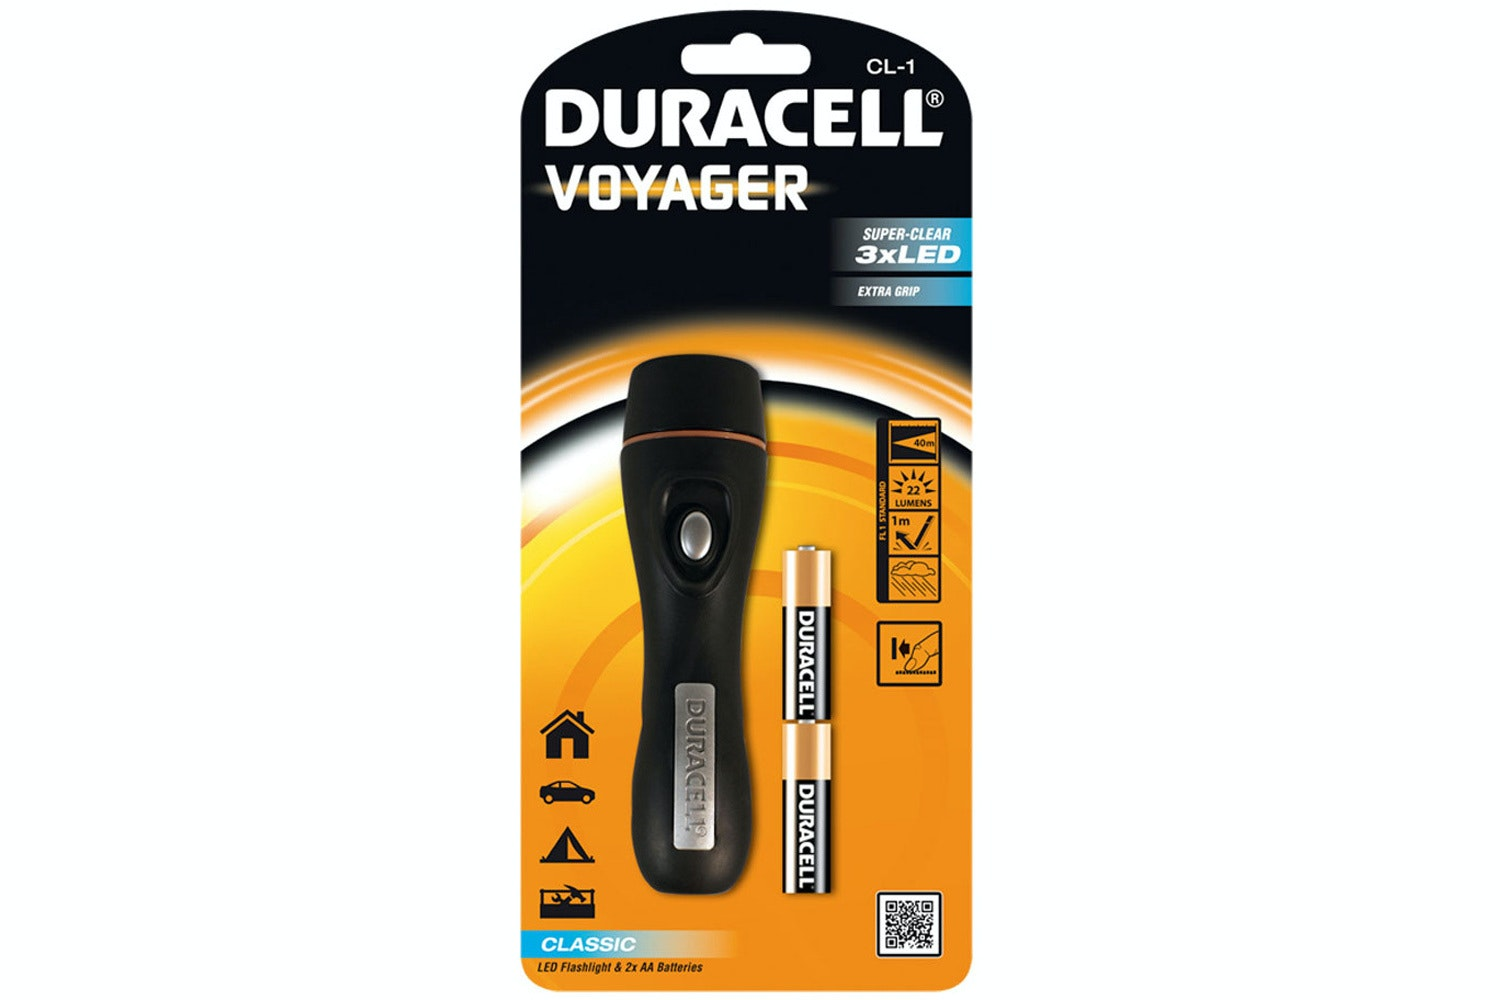 Duracell Voyager Torch